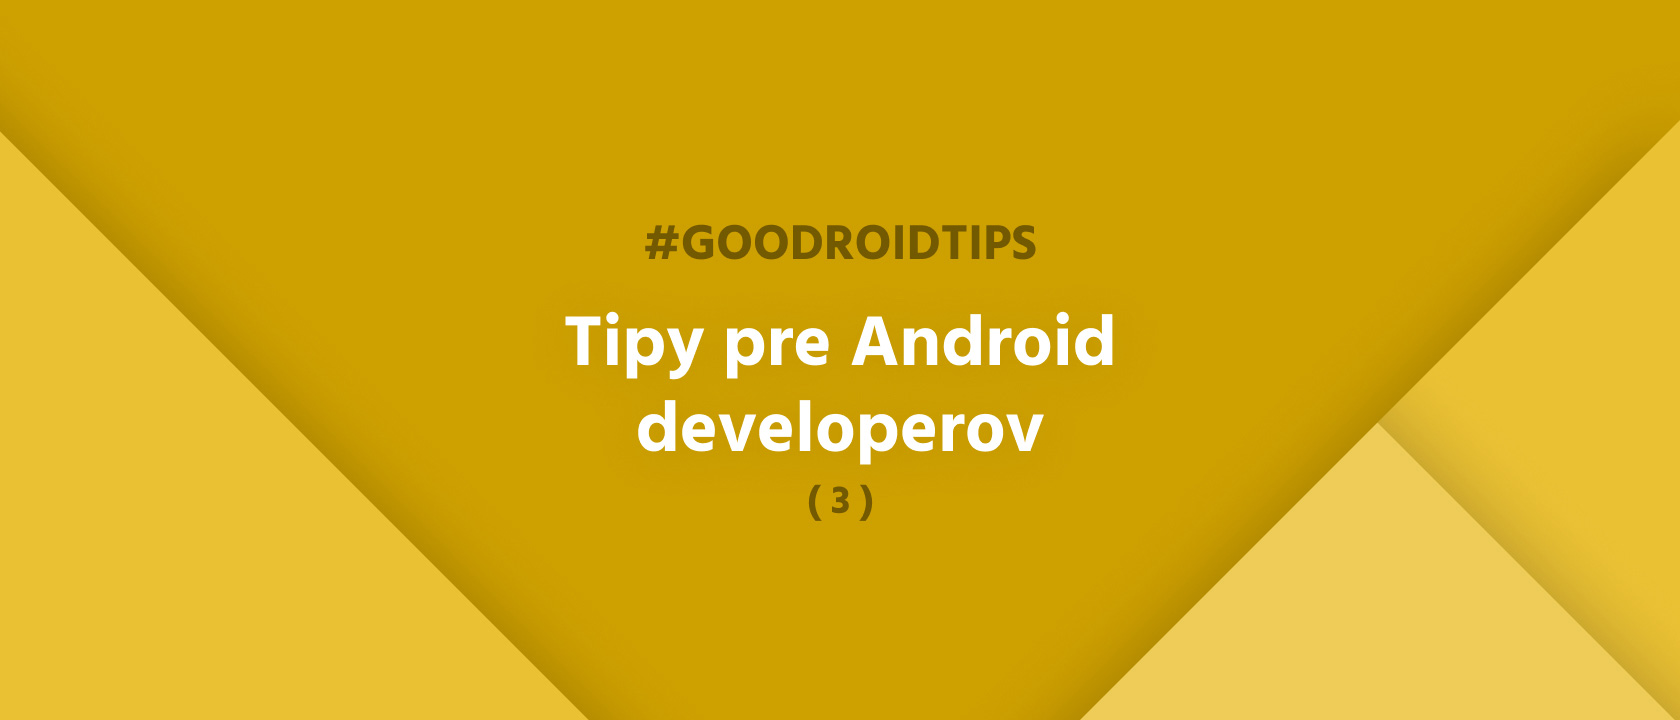 #goodroidtips III. - Tipy pre Android developerov